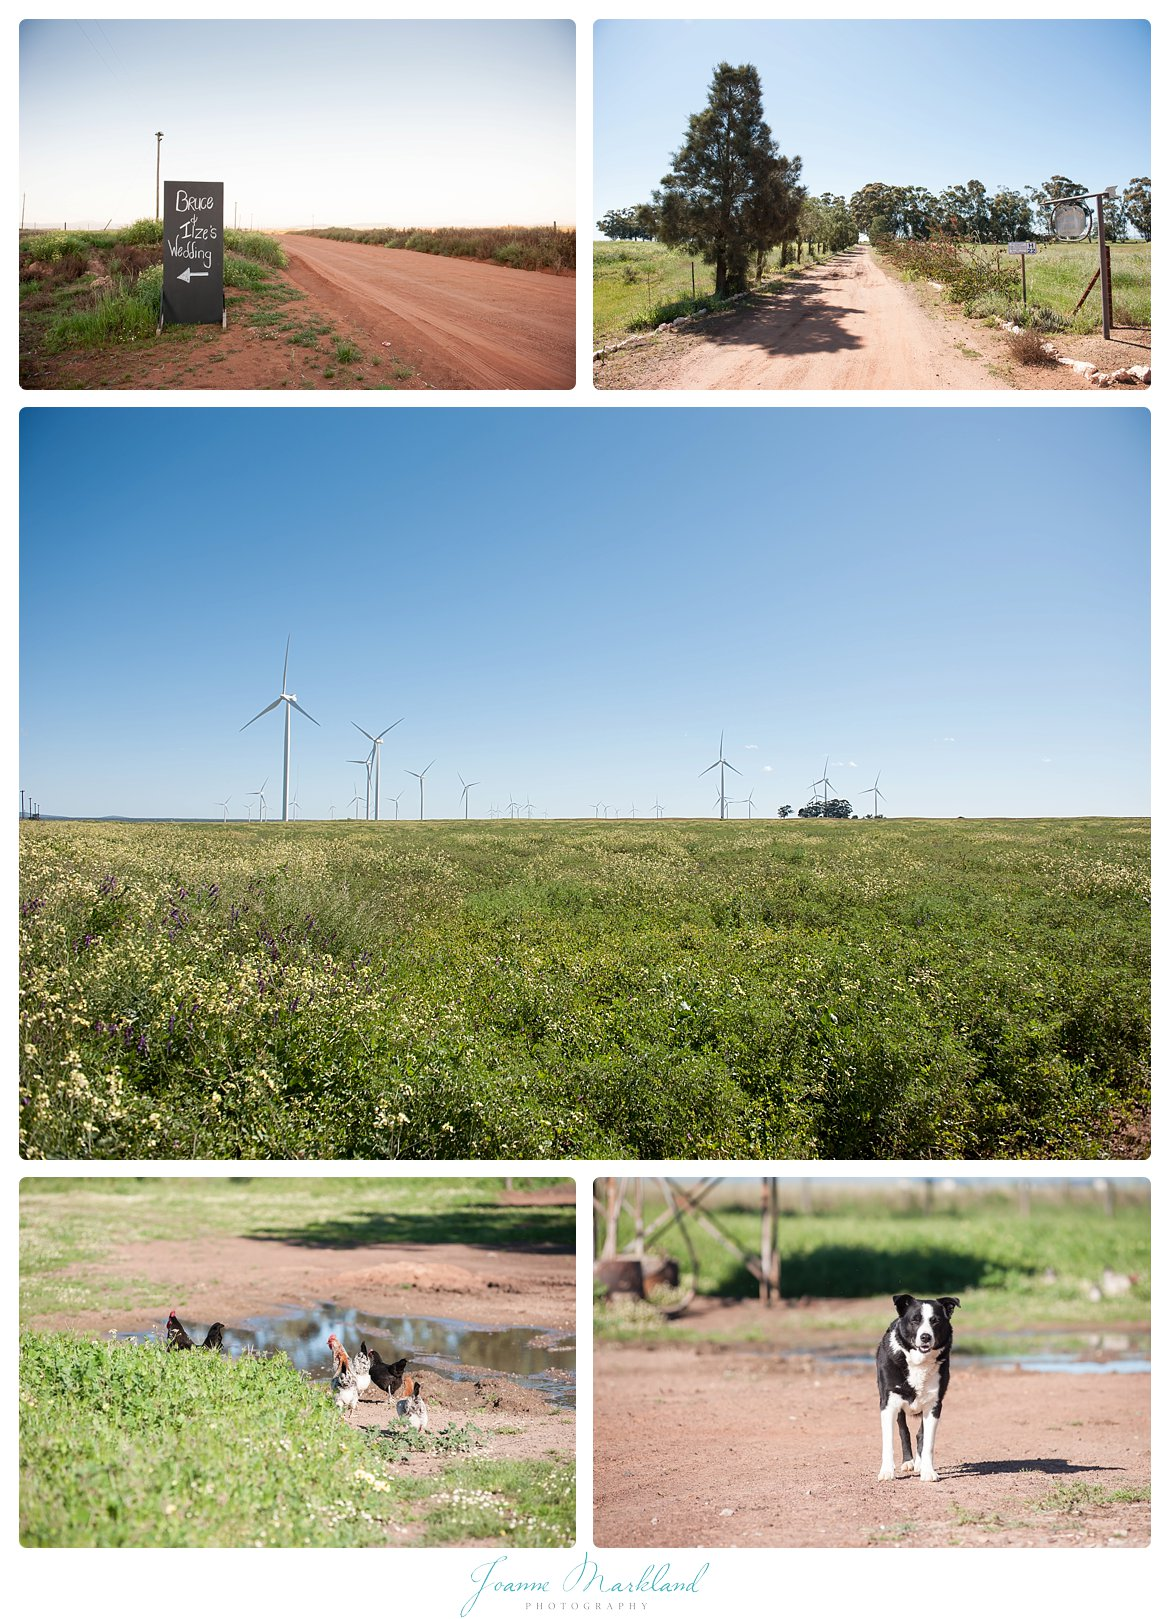 boorwater-wedding-hopefield-west-coast-cape-town-joanne-markland-photography-003